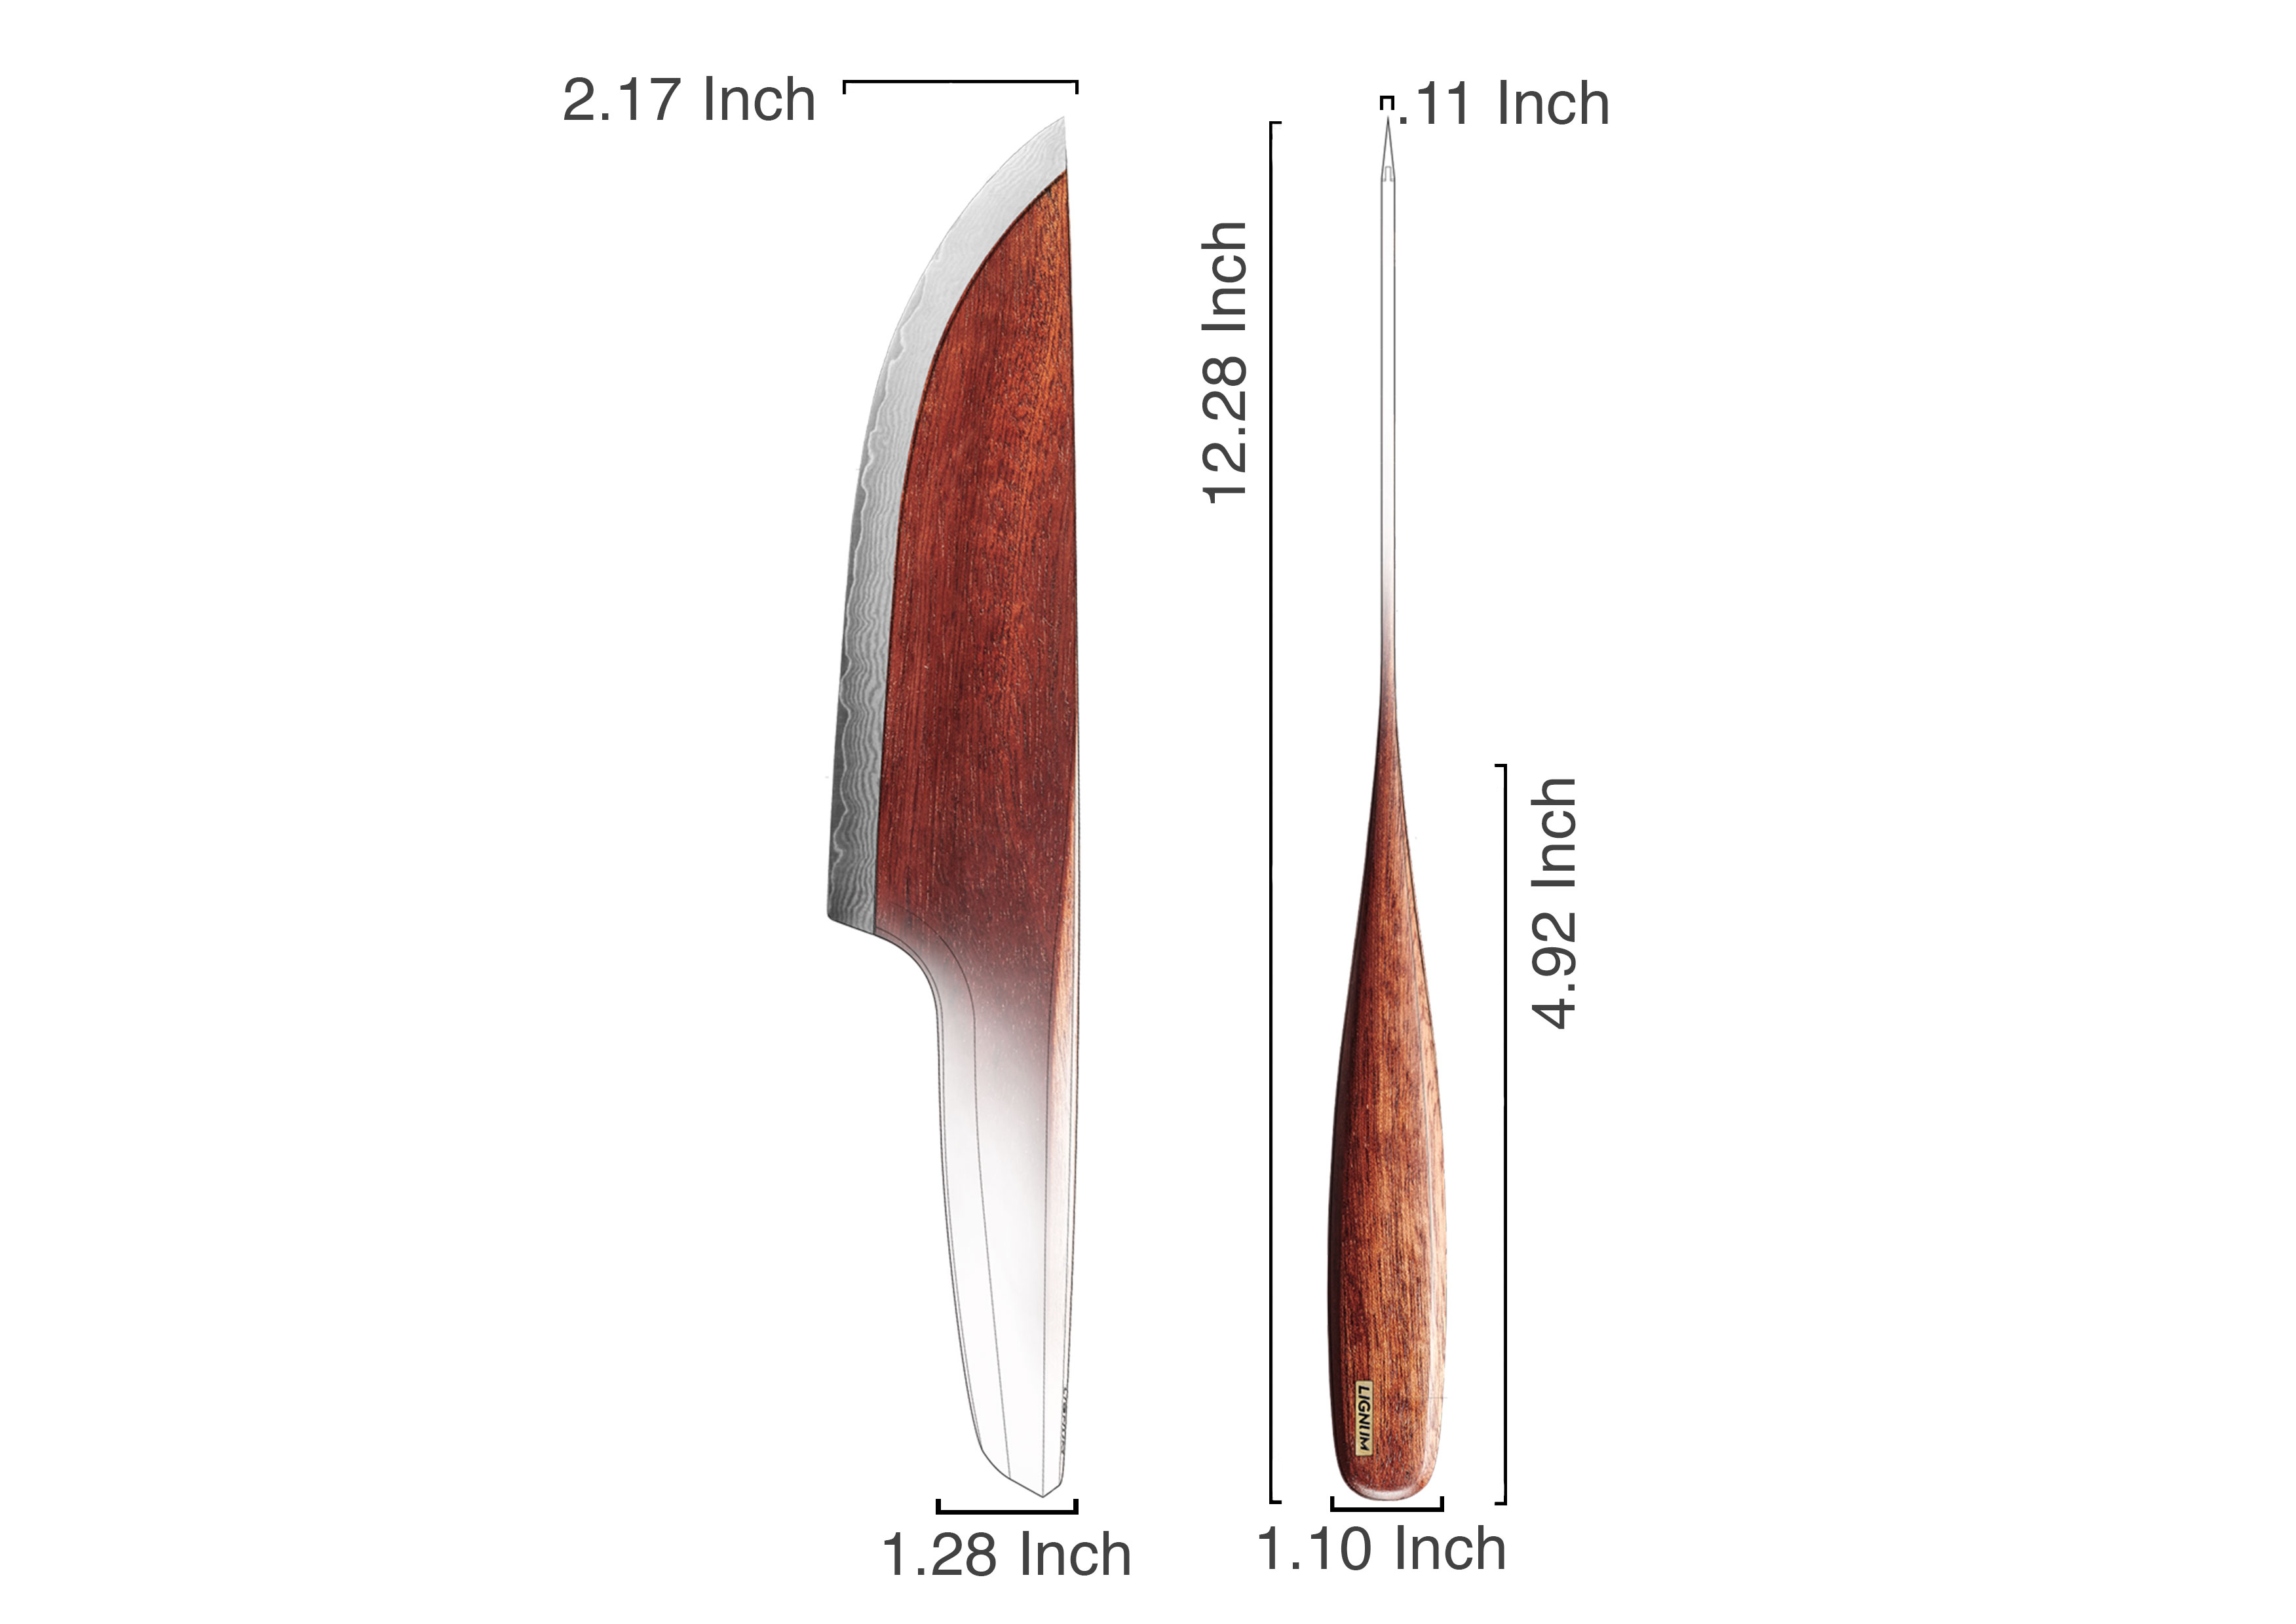 blade-size-inches